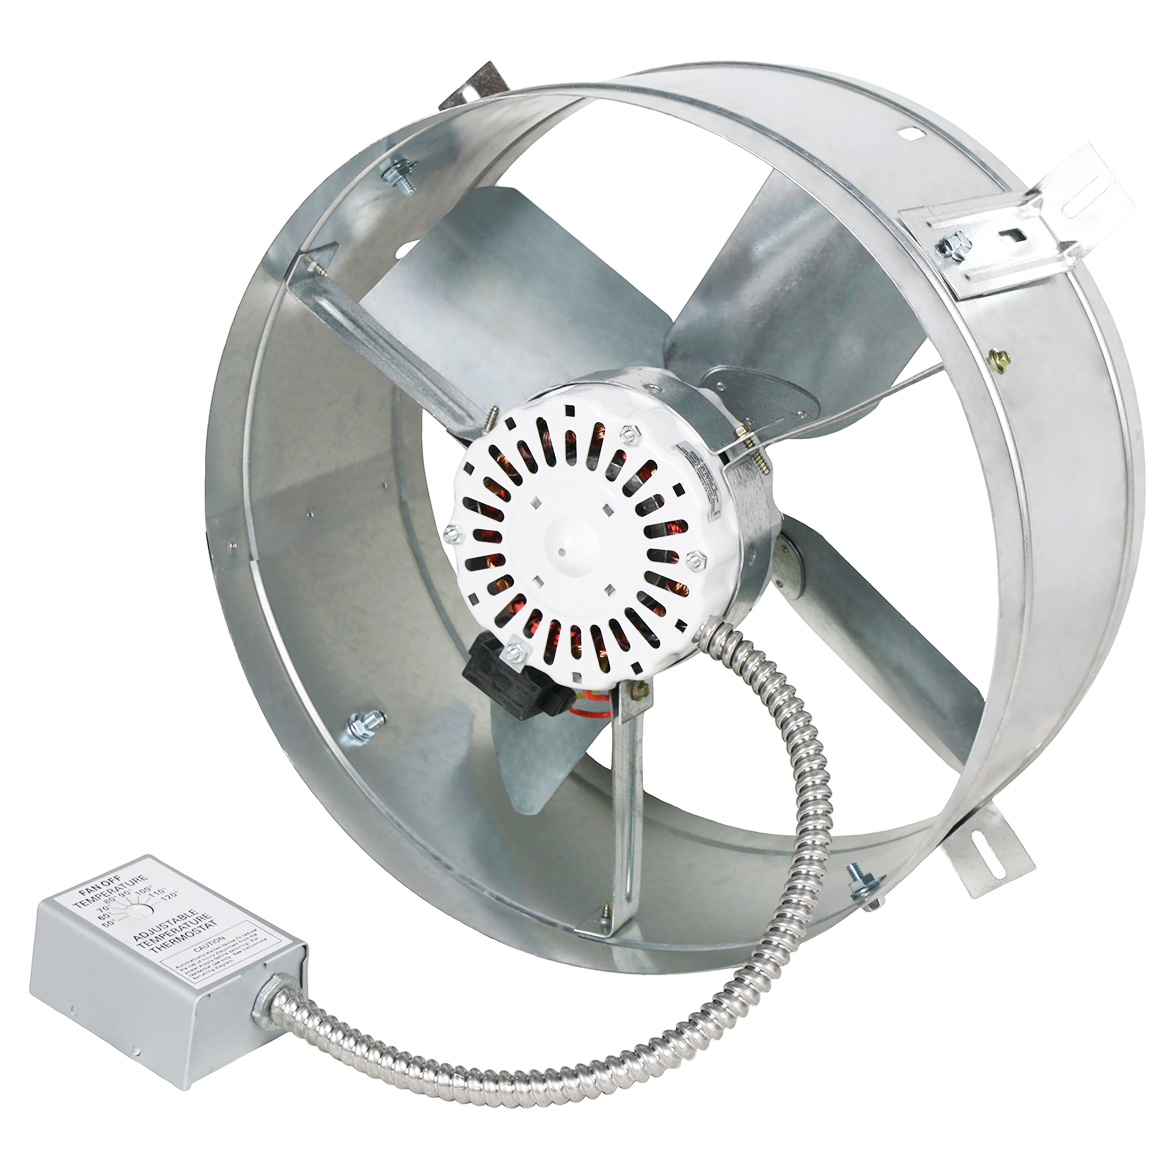 Ventamatic CX1500 1,300-CFM 2.6-Amp Gable Mount Attic Ven...